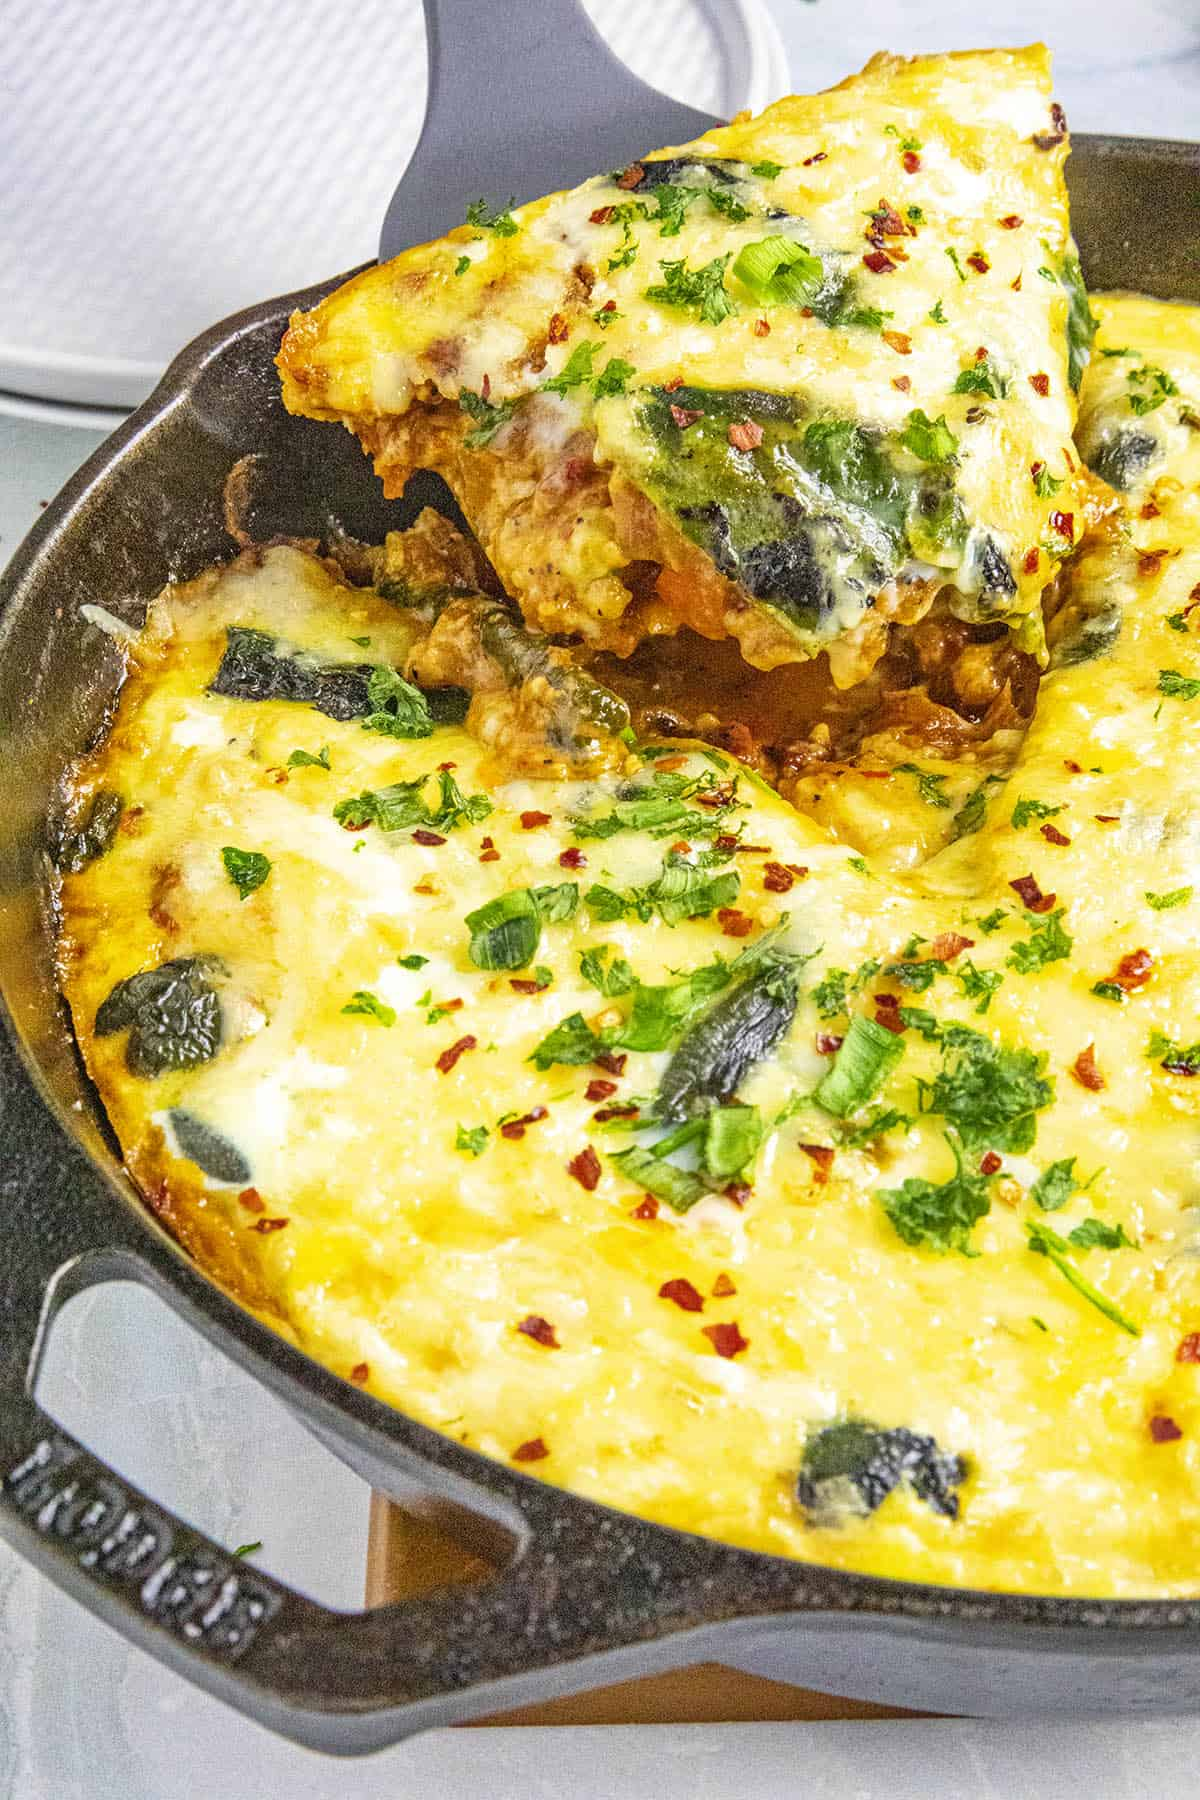 Serving up a slice of Chile Relleno Casserole